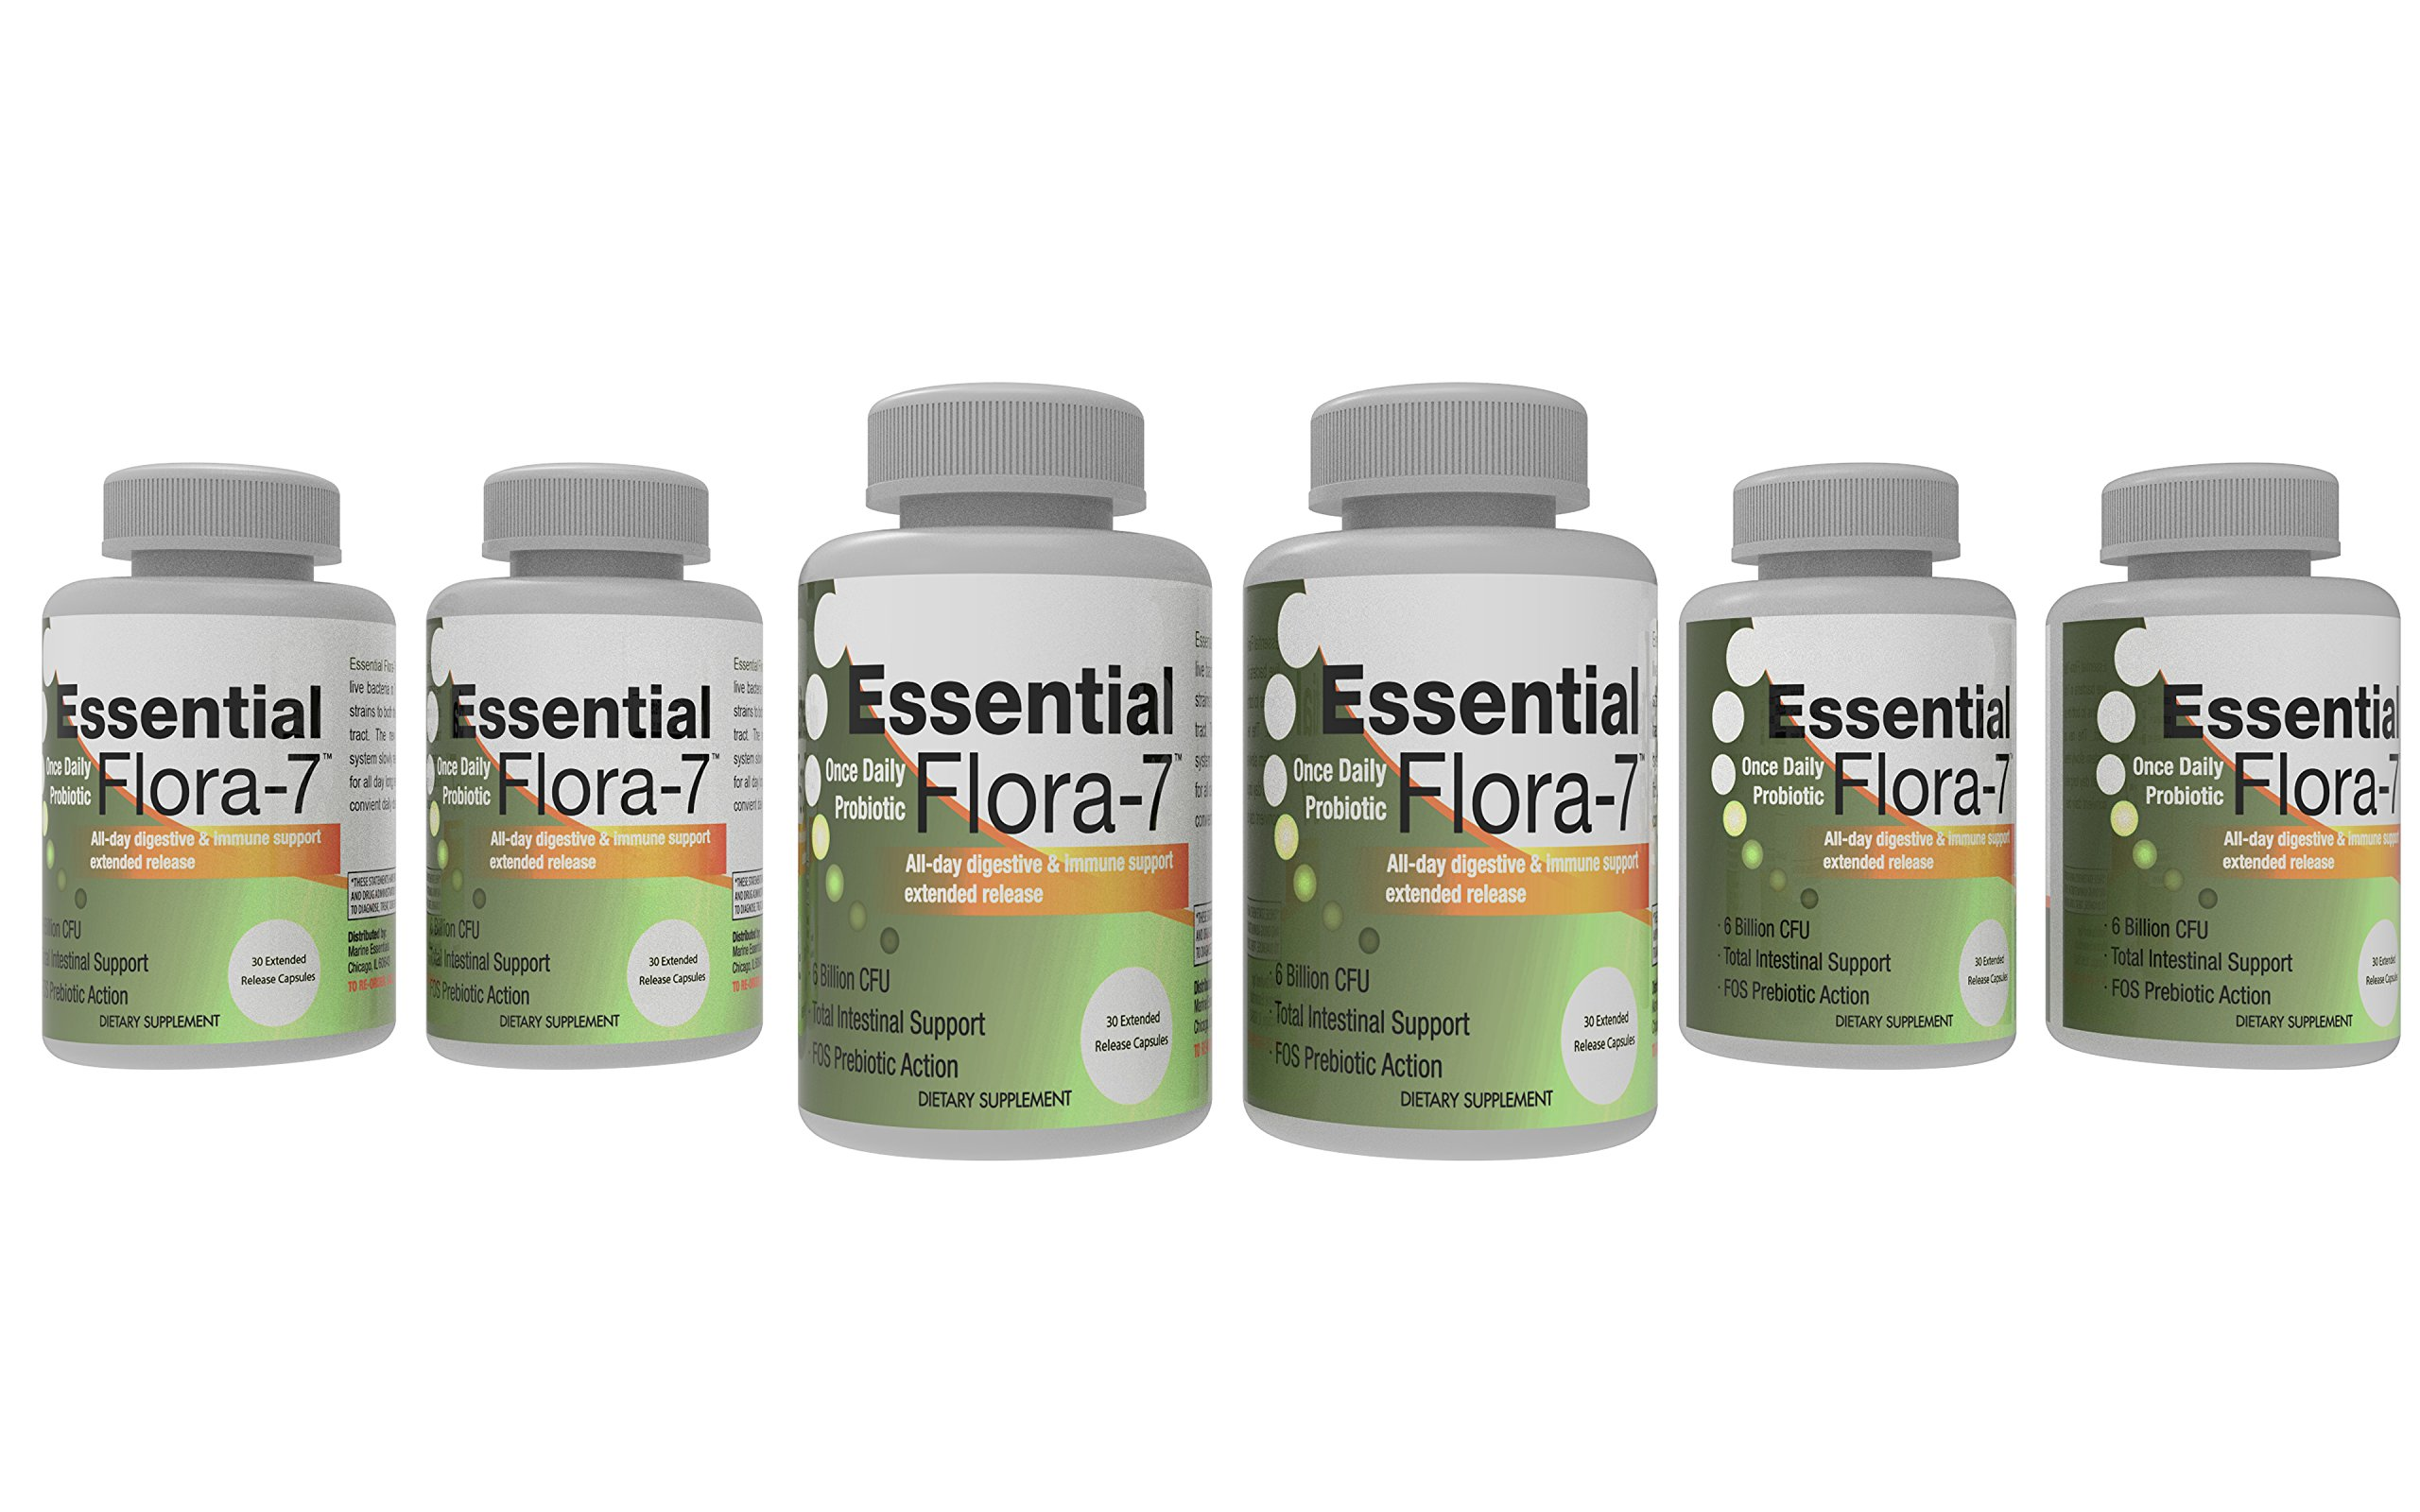 Essential Flora-7 Probiotic 700mg with L Acidophilus for Intestinal Health (30 Time Release Caps) 6 Months